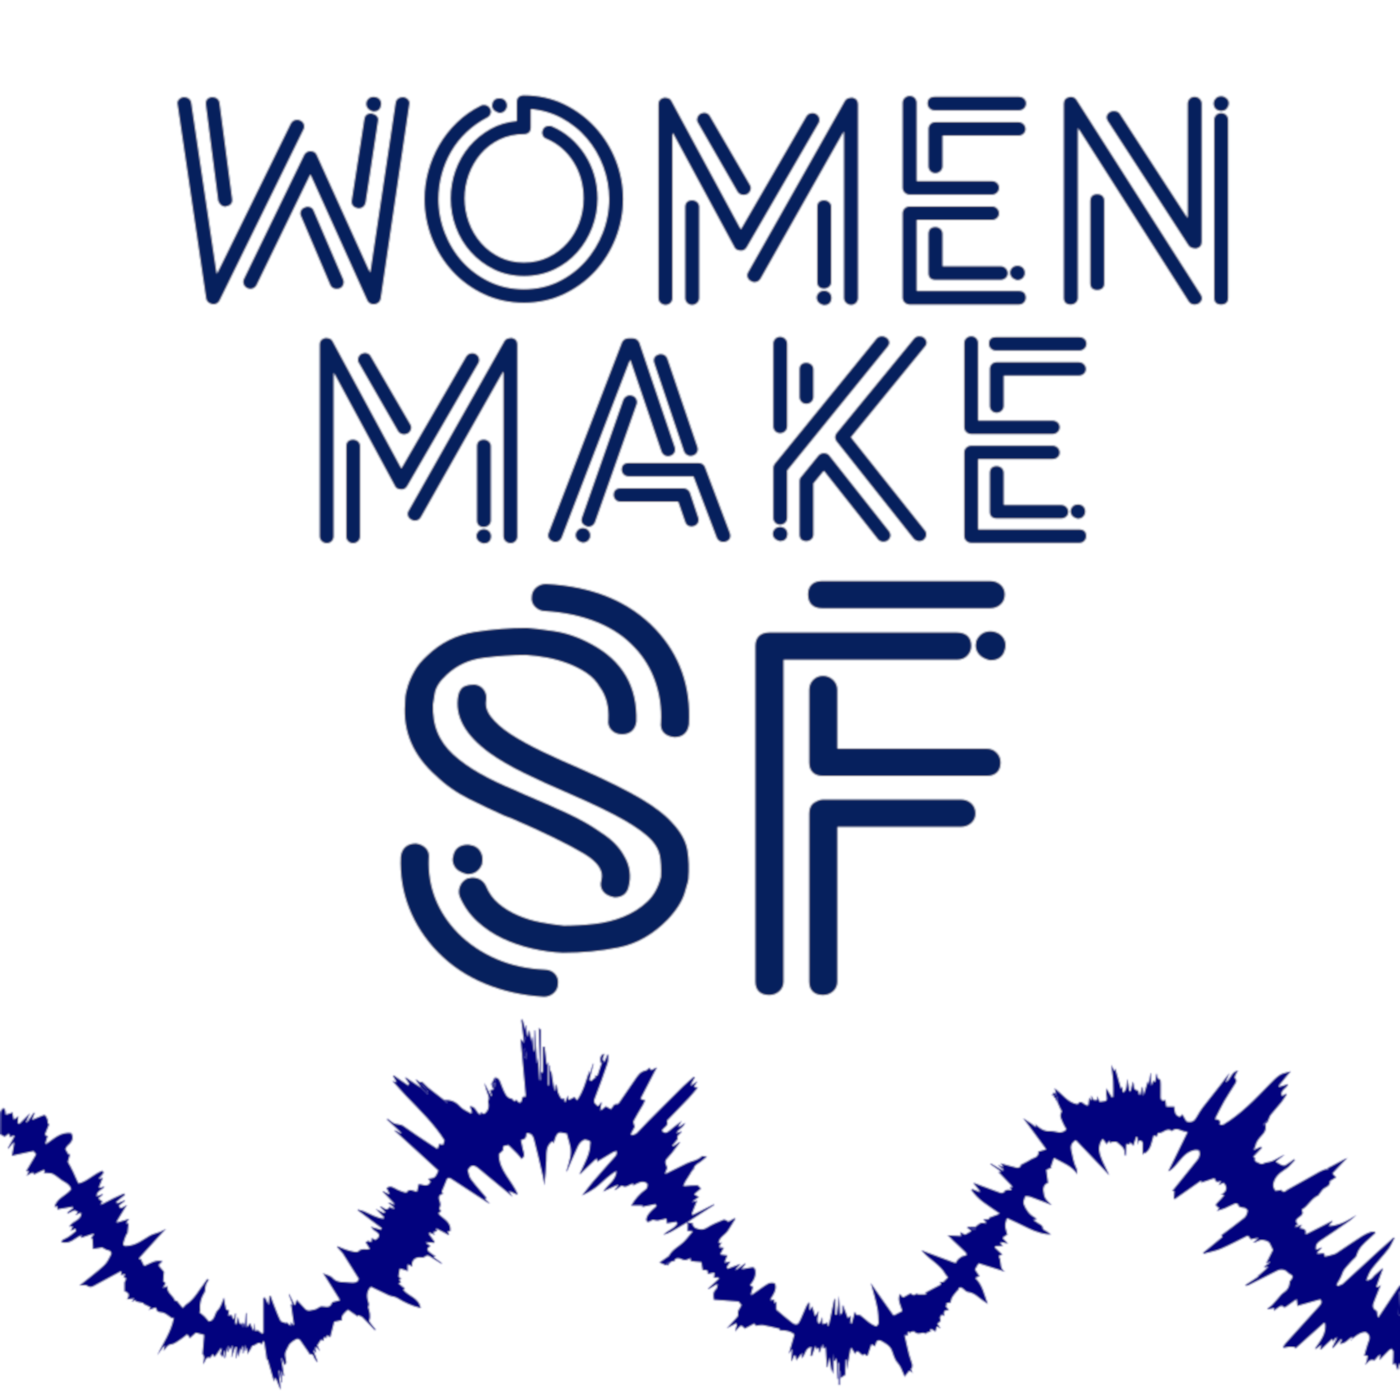 womenmakesf